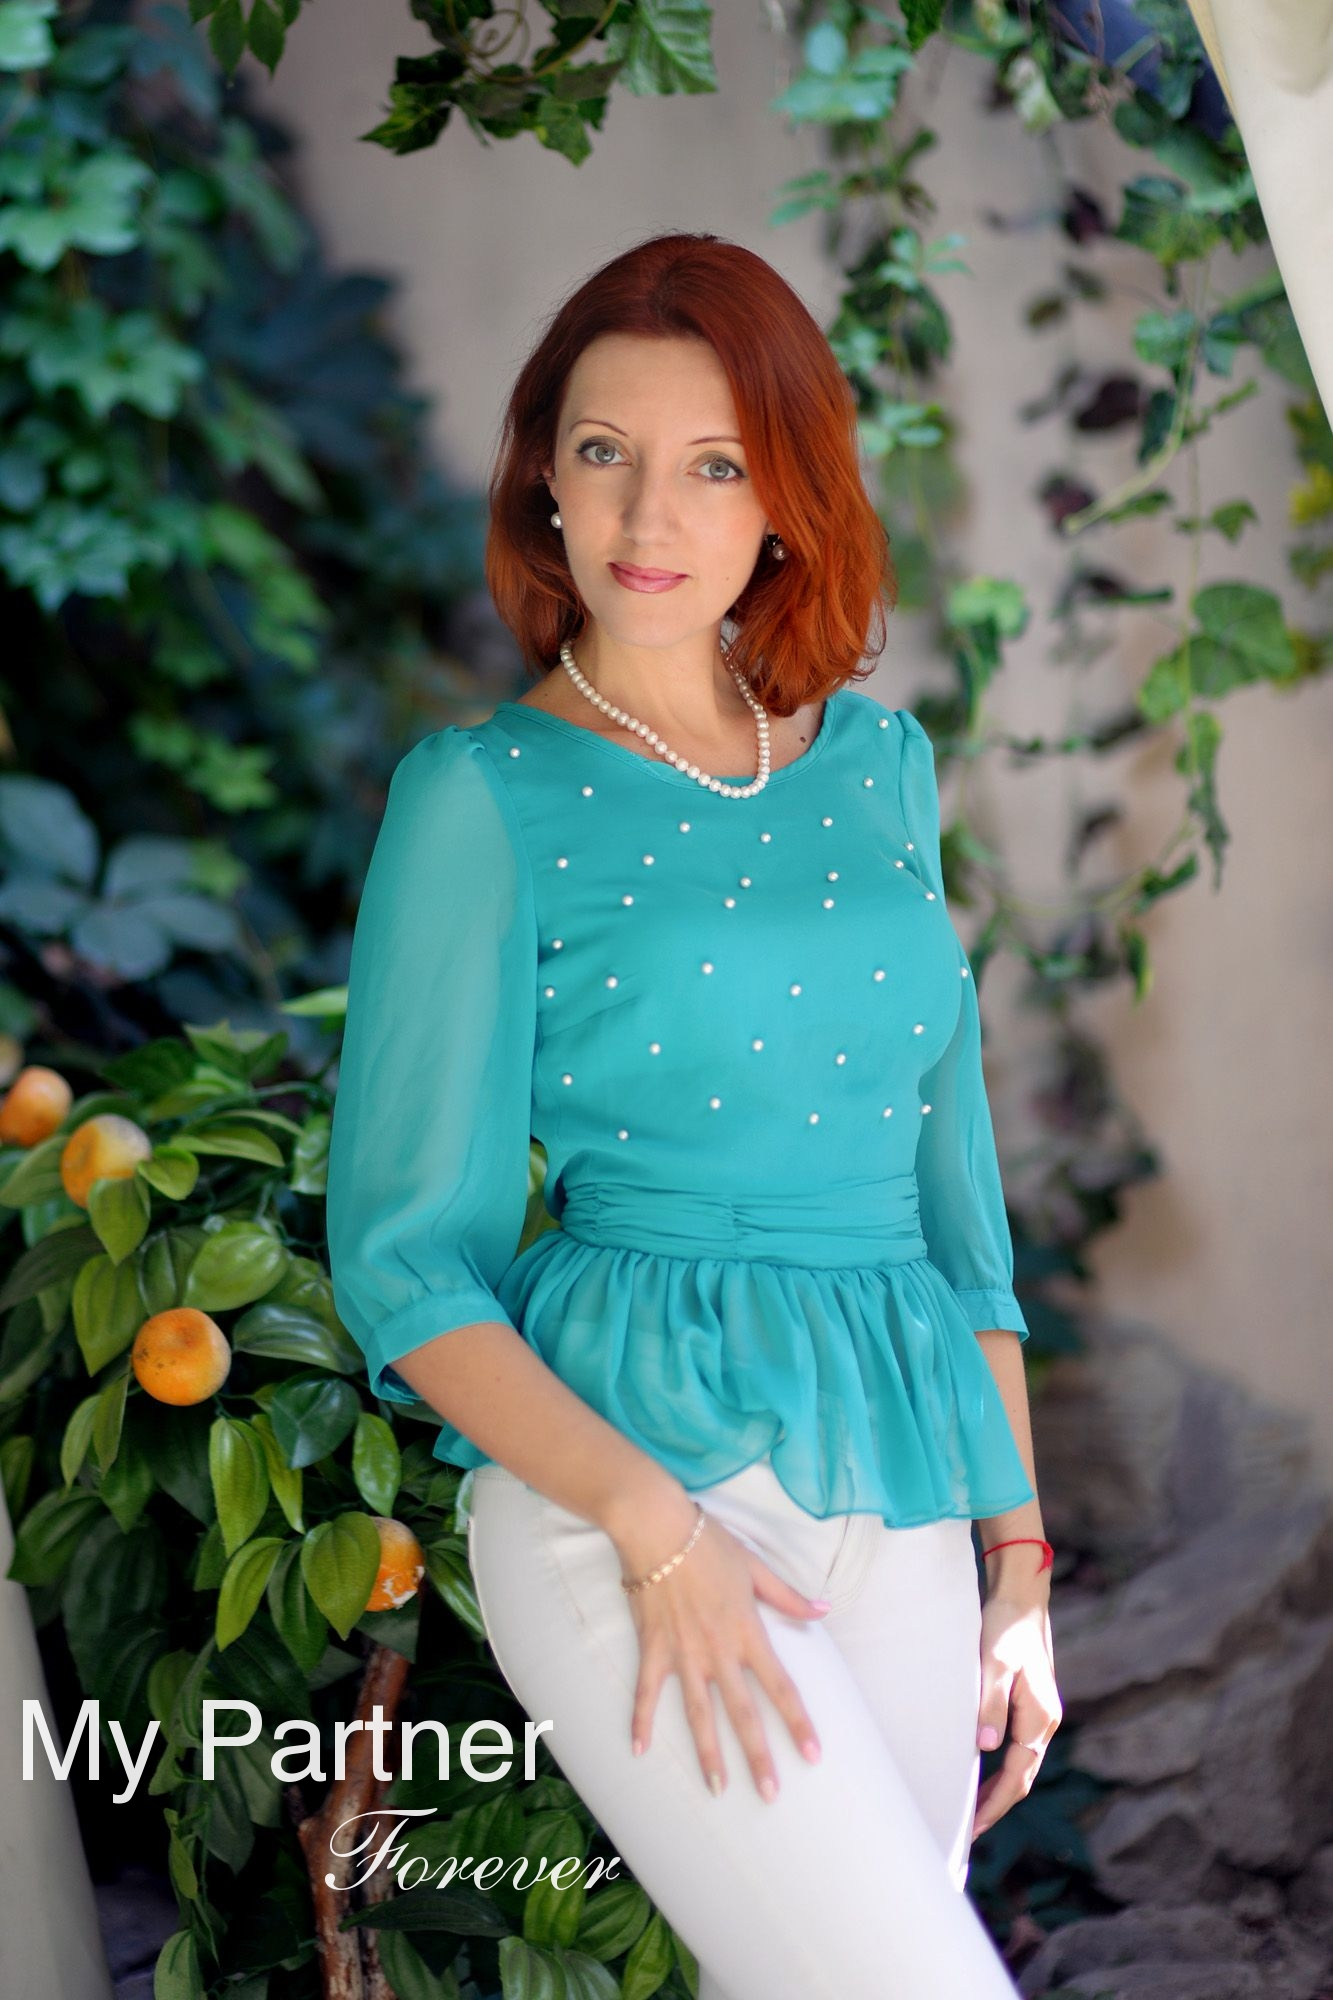 Datingsite to Meet Single Ukrainian Woman Evgeniya from Kharkov, Ukraine